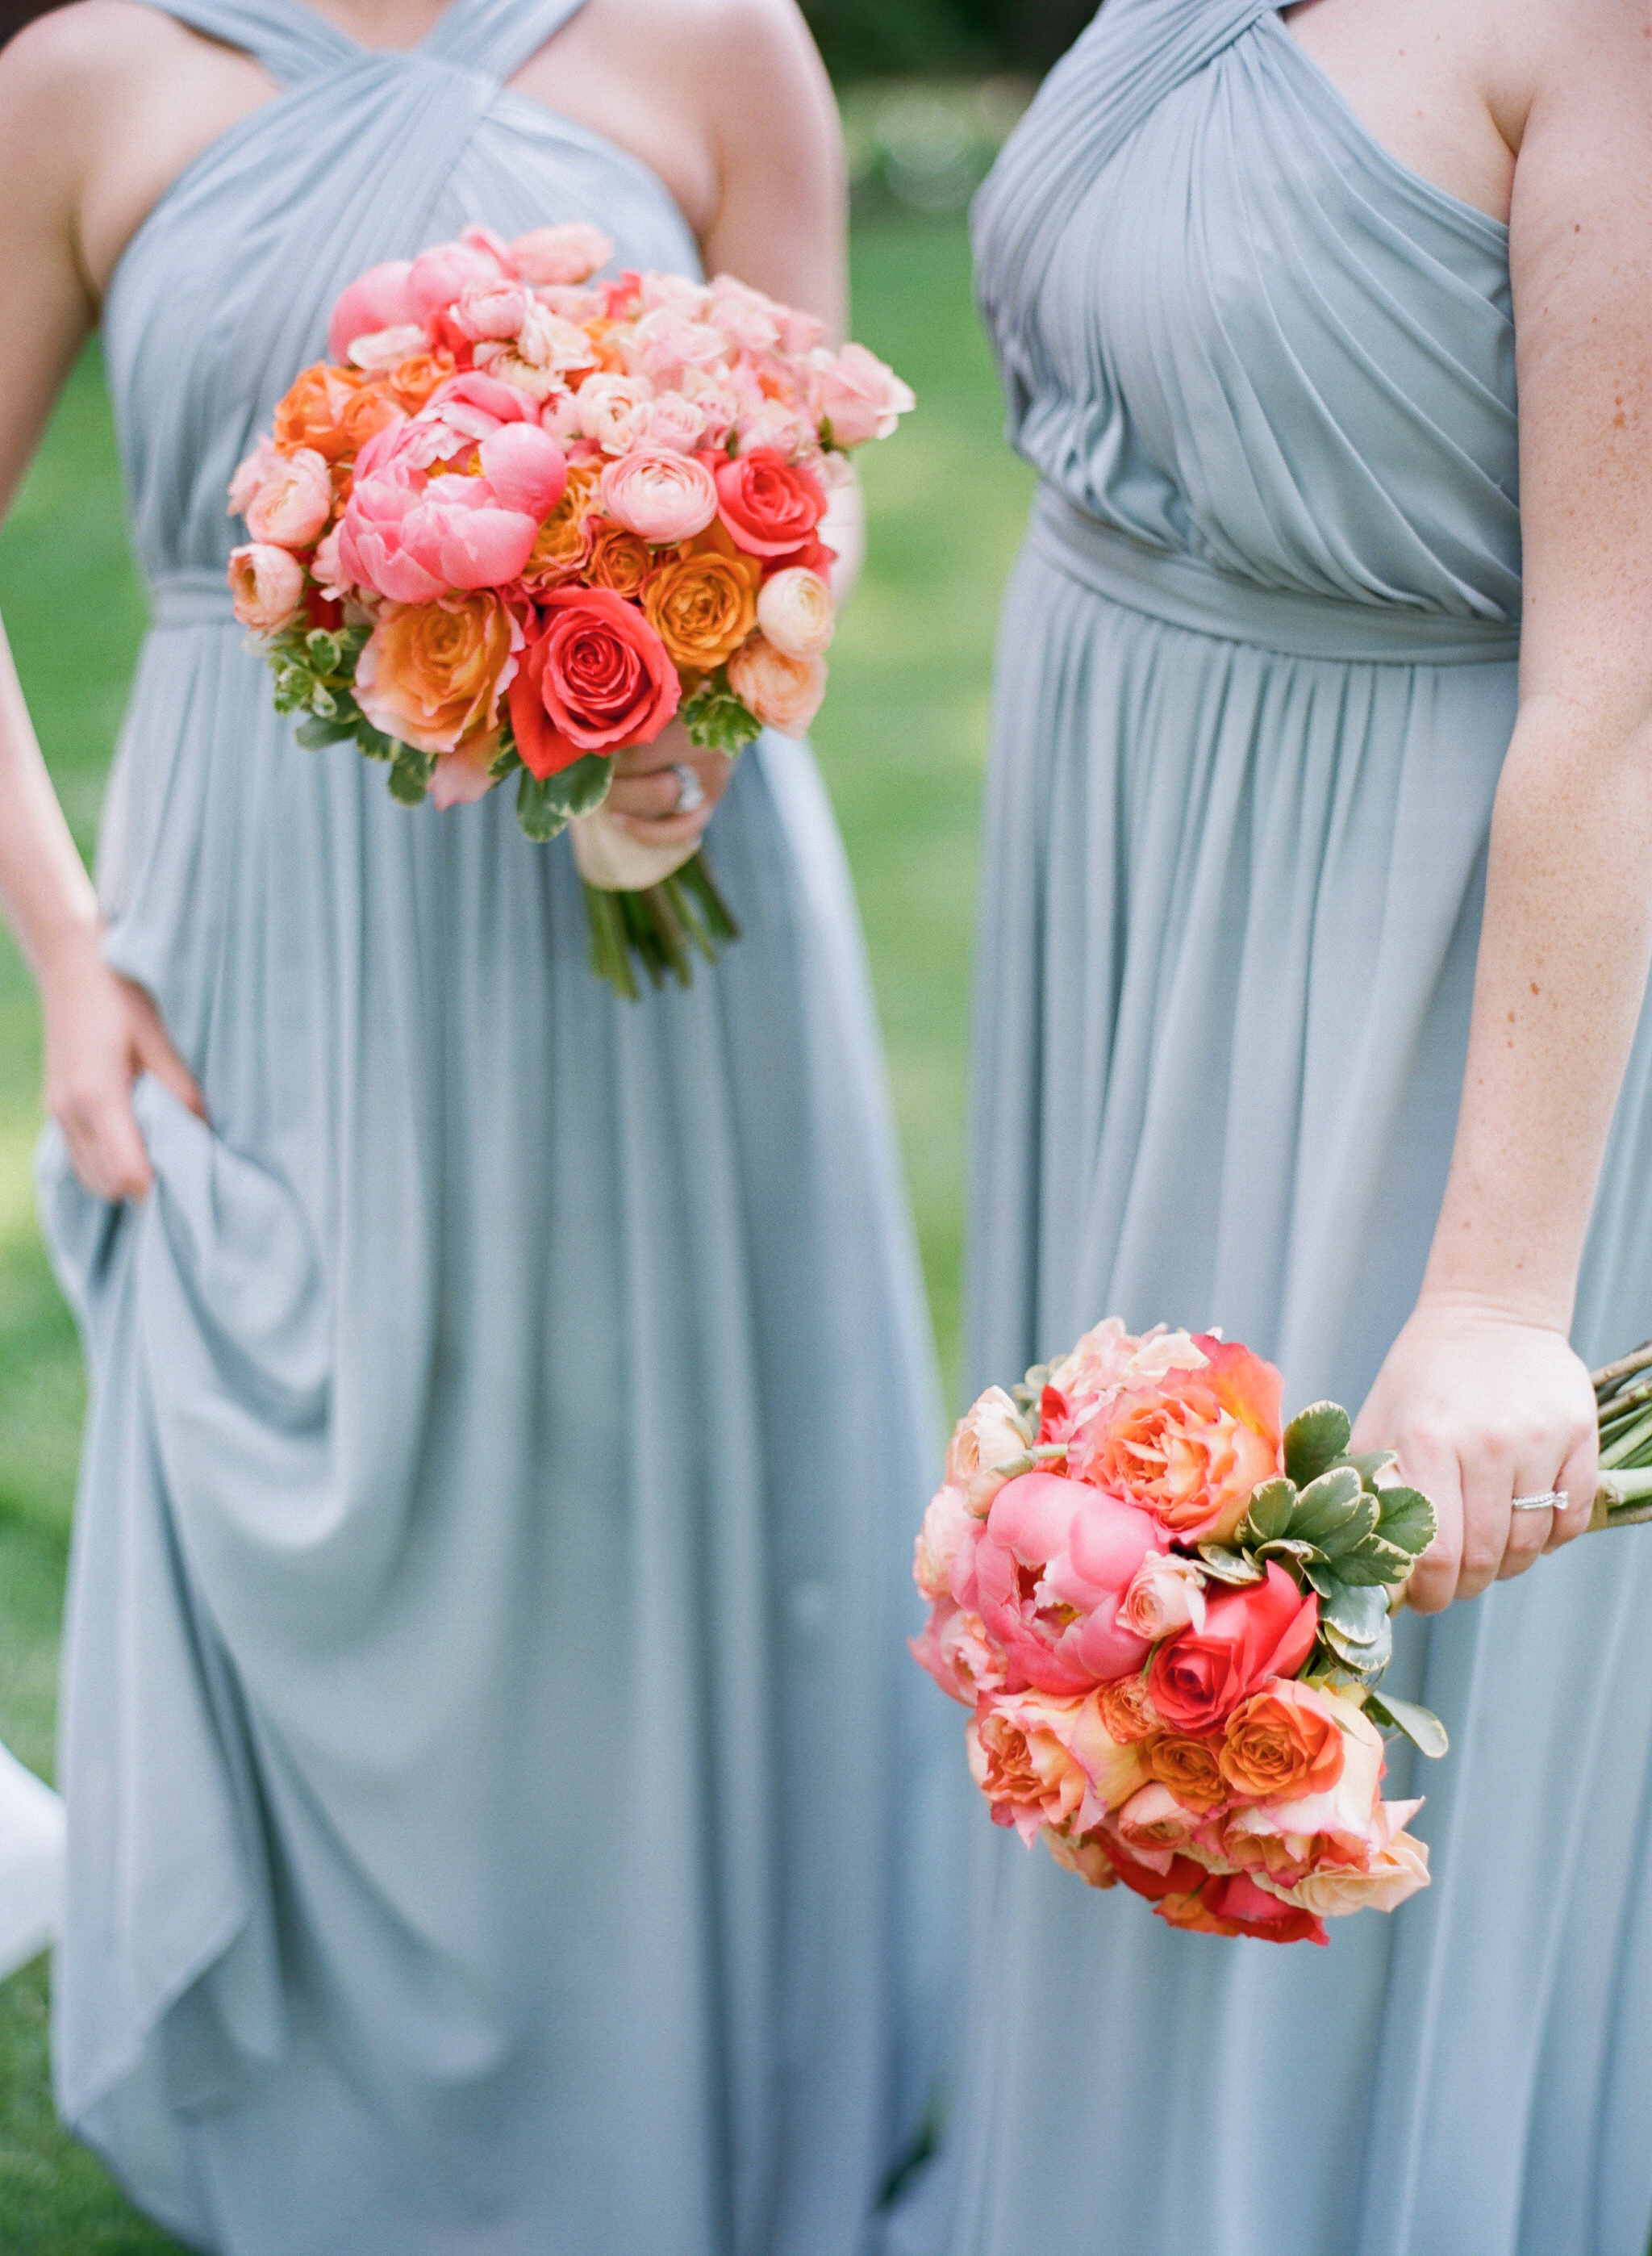 These stunning bridesmaids bouquets feature coral peony, oranges roses, pink ranunculus and soft spray roses.